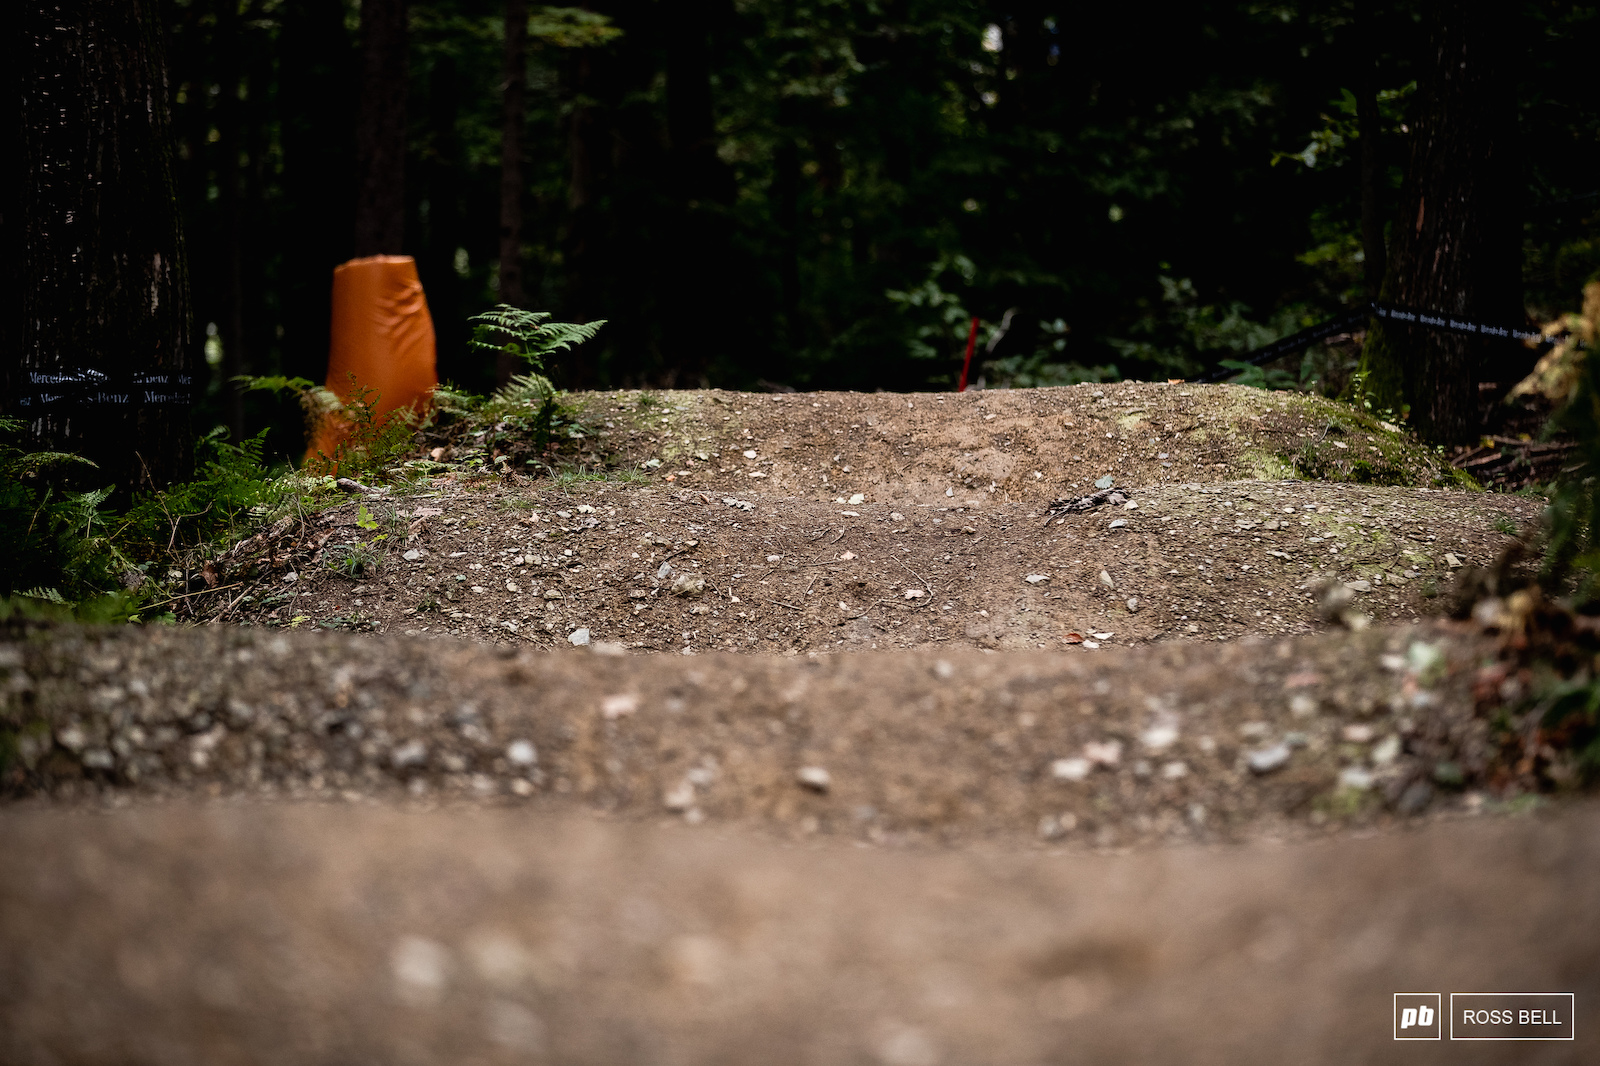 The closing section of track is more manmade and features lots of rollers jumps and berms.